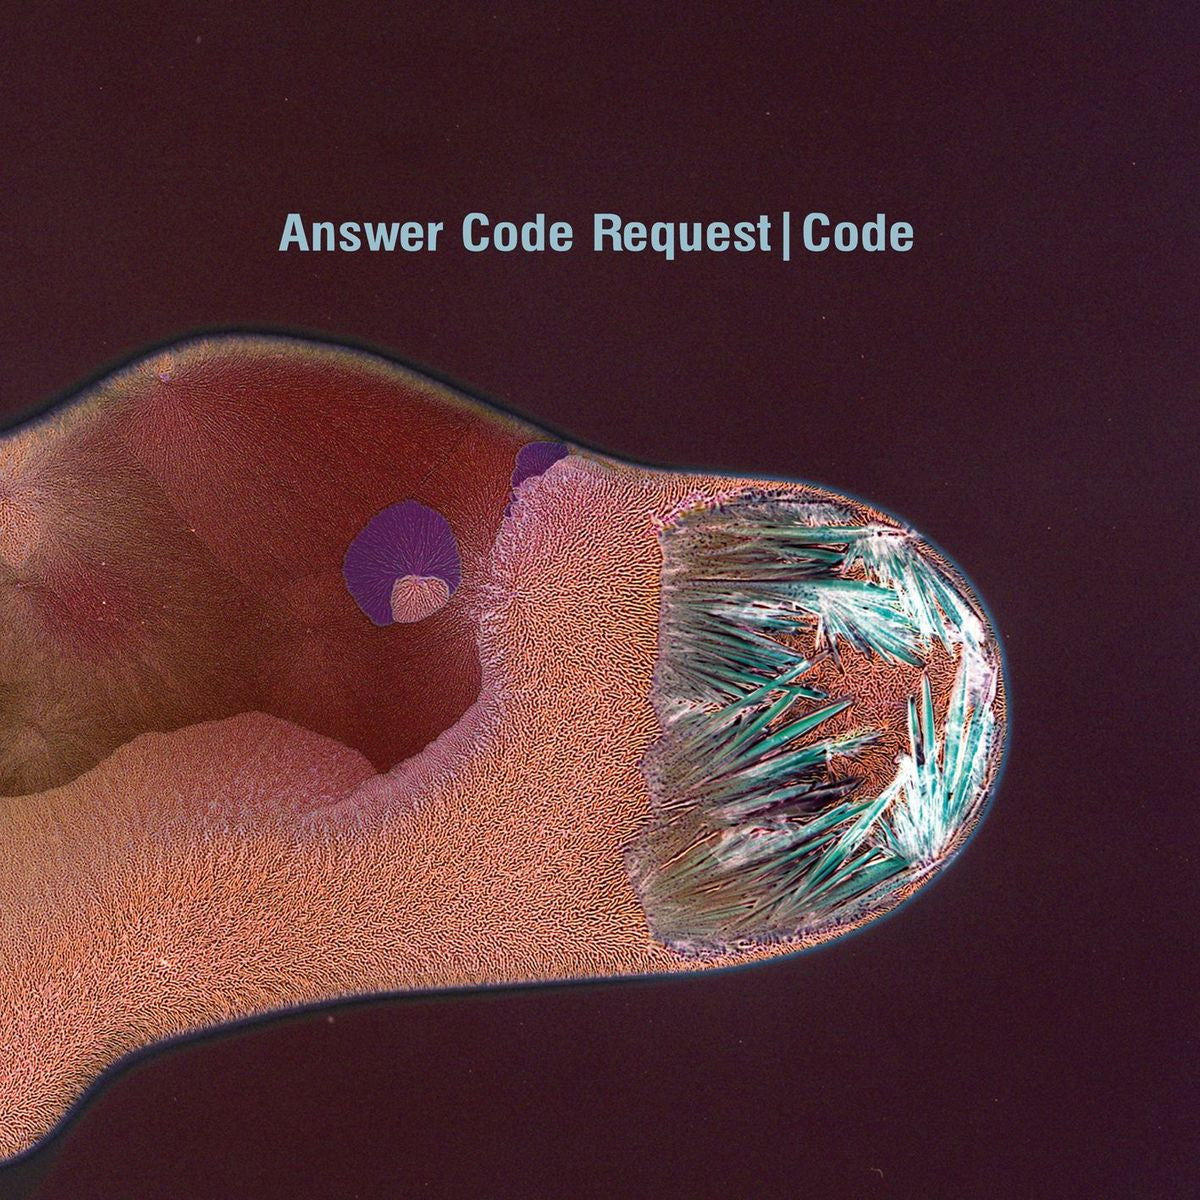 Answer Code Request - Code - Unearthed Sounds